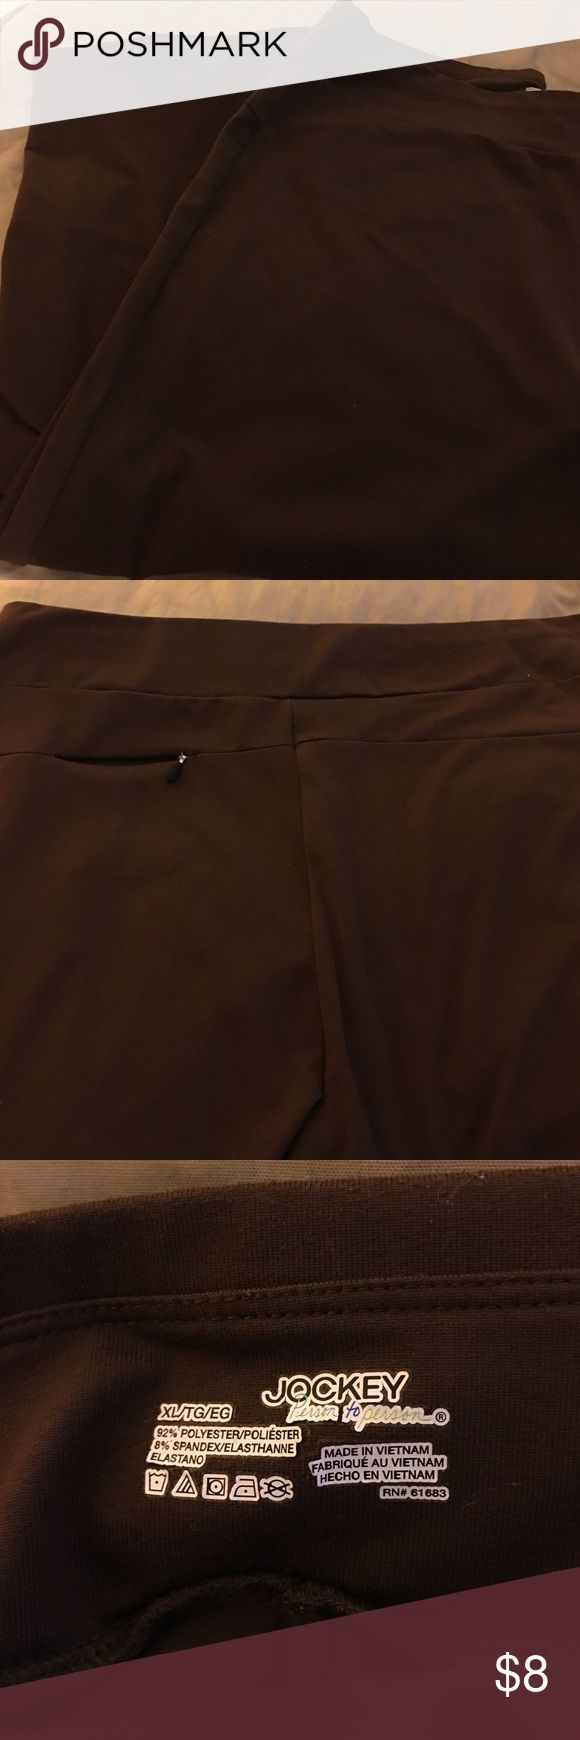 Jockey Brown Lounge Pants XL Jockey Pants pocket in back. Cute for yoga or running errands. I live in a clean smoke free home with furry babies. Jockey Pants Track Pants & Joggers